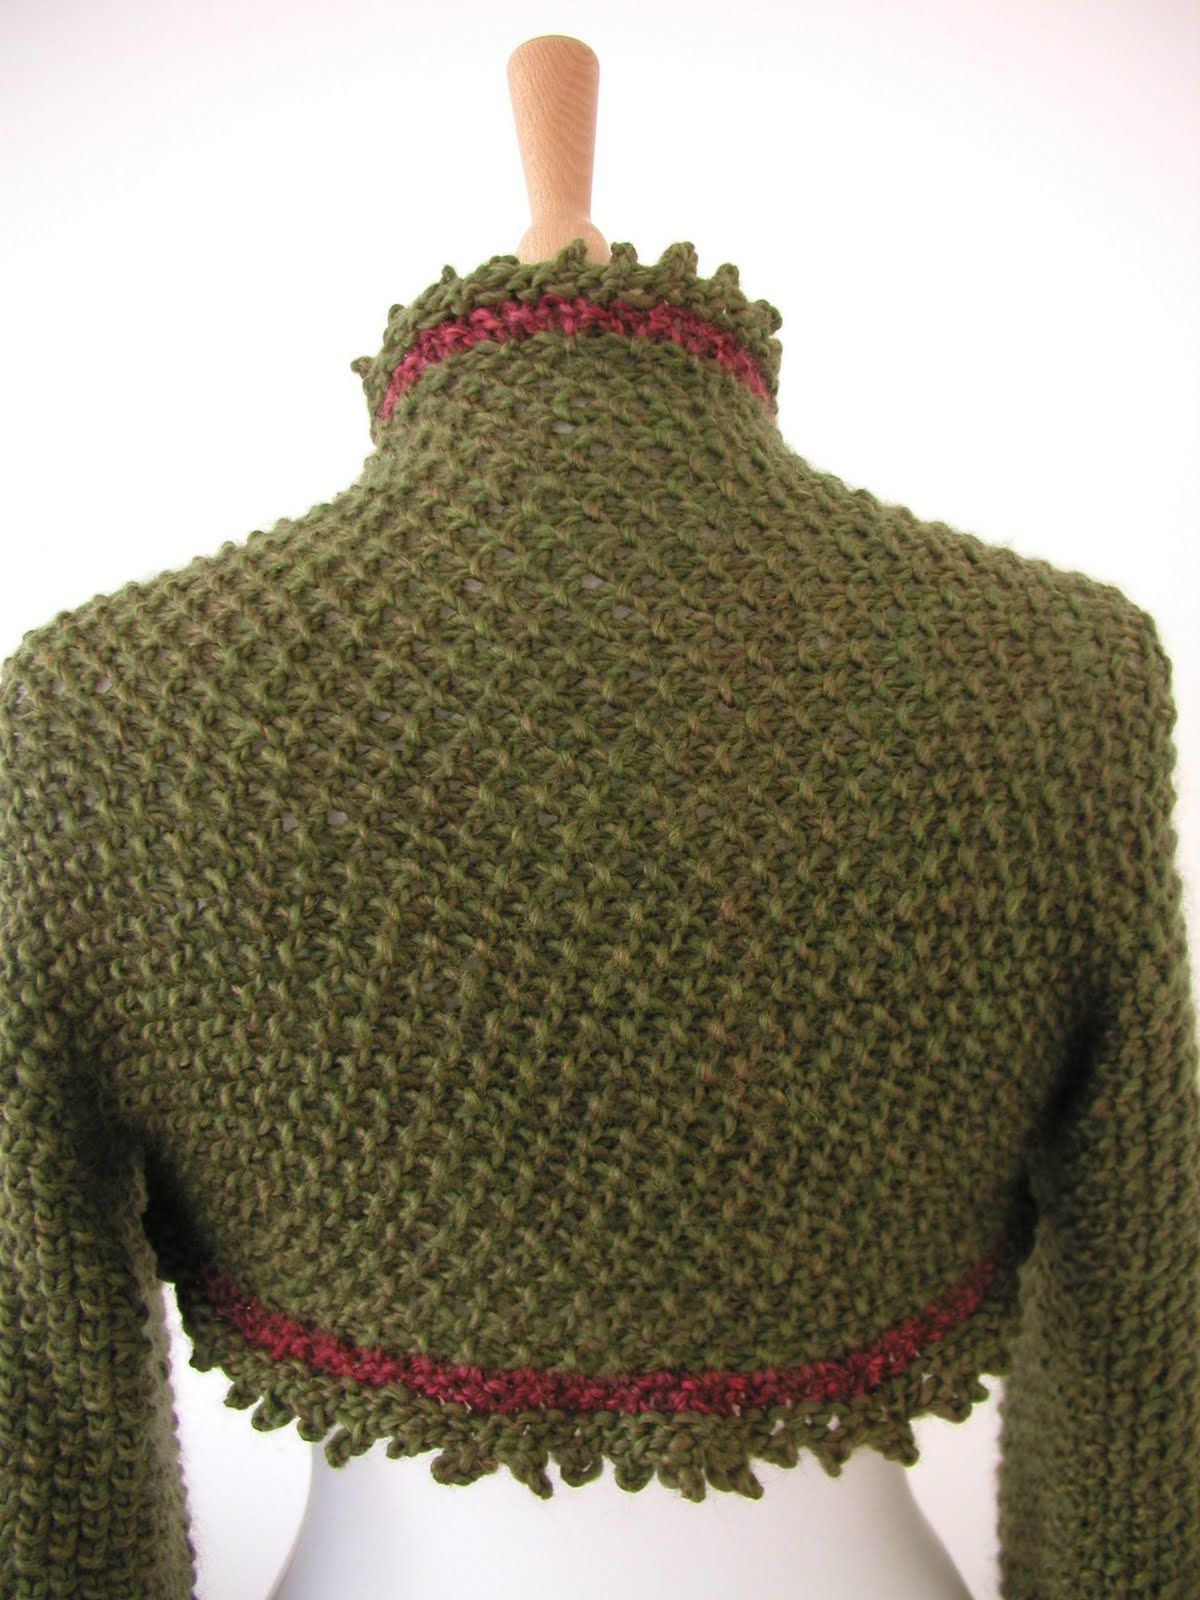 Shrug patterns to knit hand knitted things patterns holly shrug patterns to knit hand knitted things patterns holly berry shrug bankloansurffo Image collections